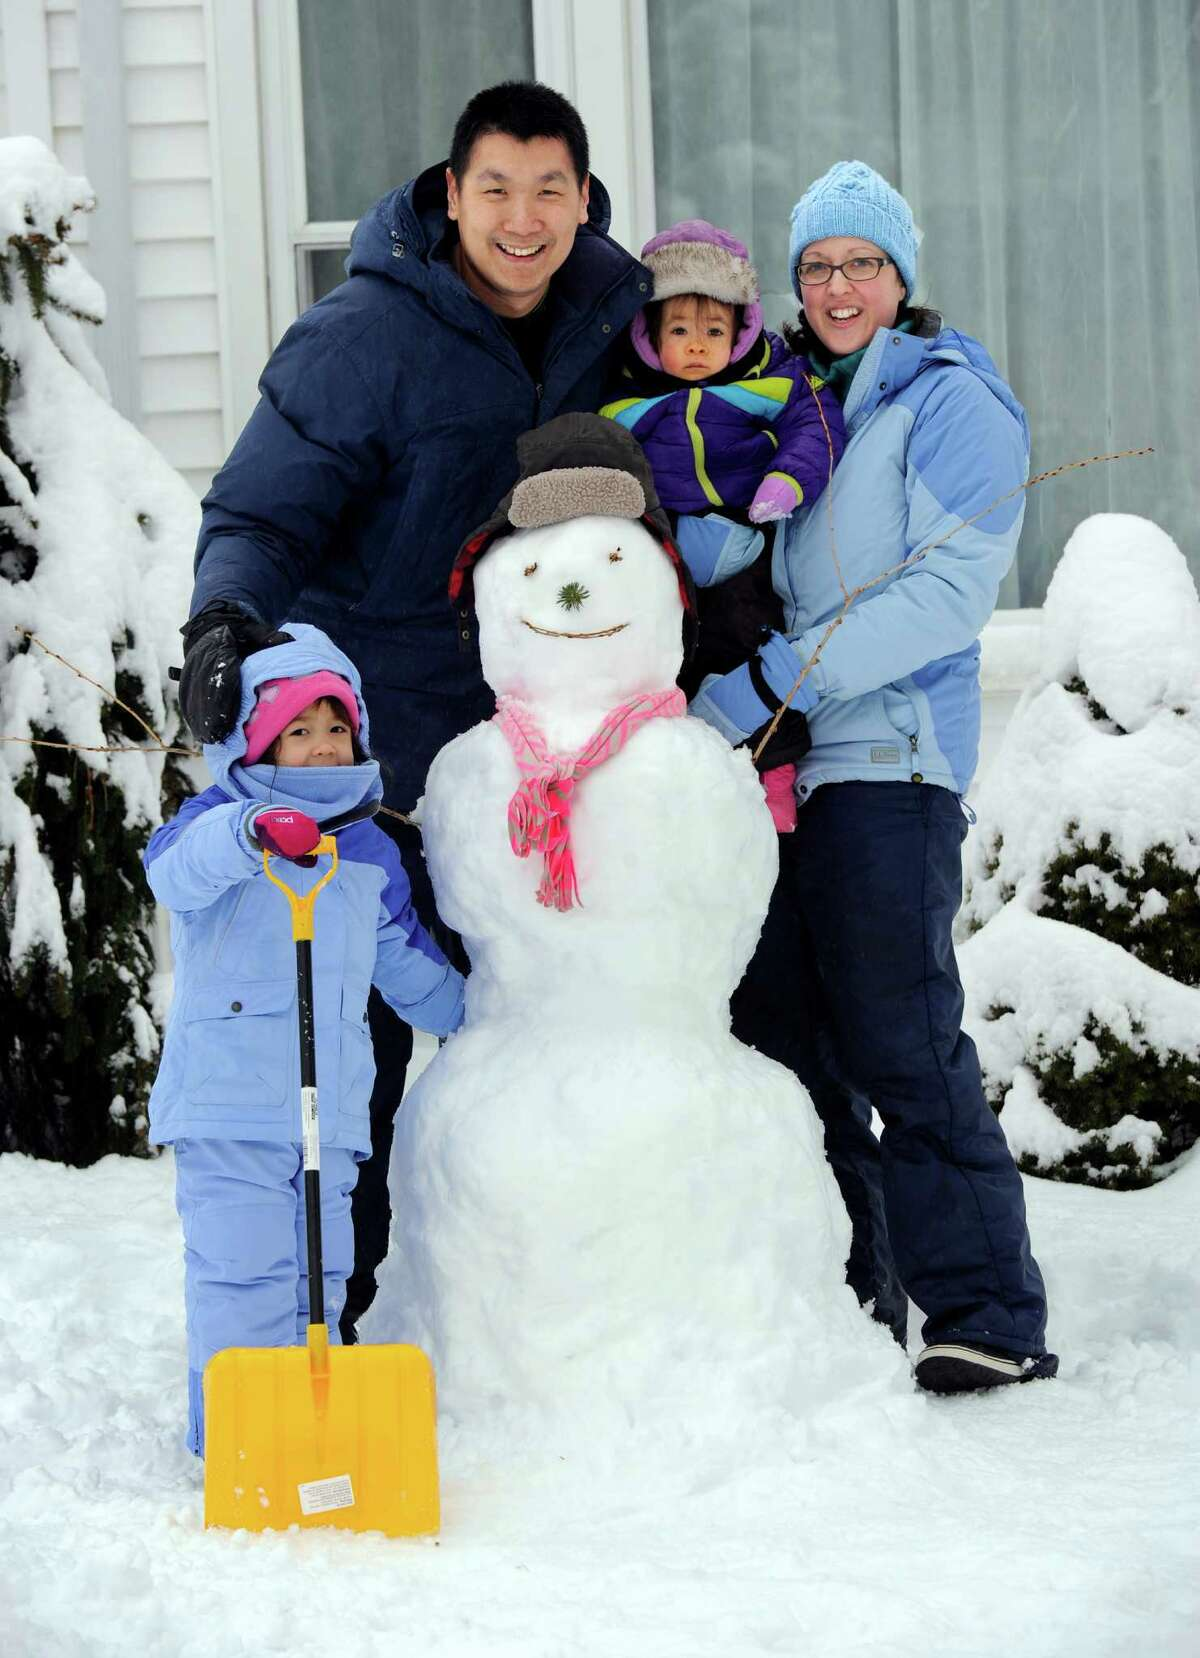 The Boediarto family of Brookfield, Conn,- parents Steven and Bree, with daughters, Senora, 3 1/2, left and Adelynn, 15-months-old, pose with the snowman they created after an overnight snowfall, Saturday morning, January 24, 2015.